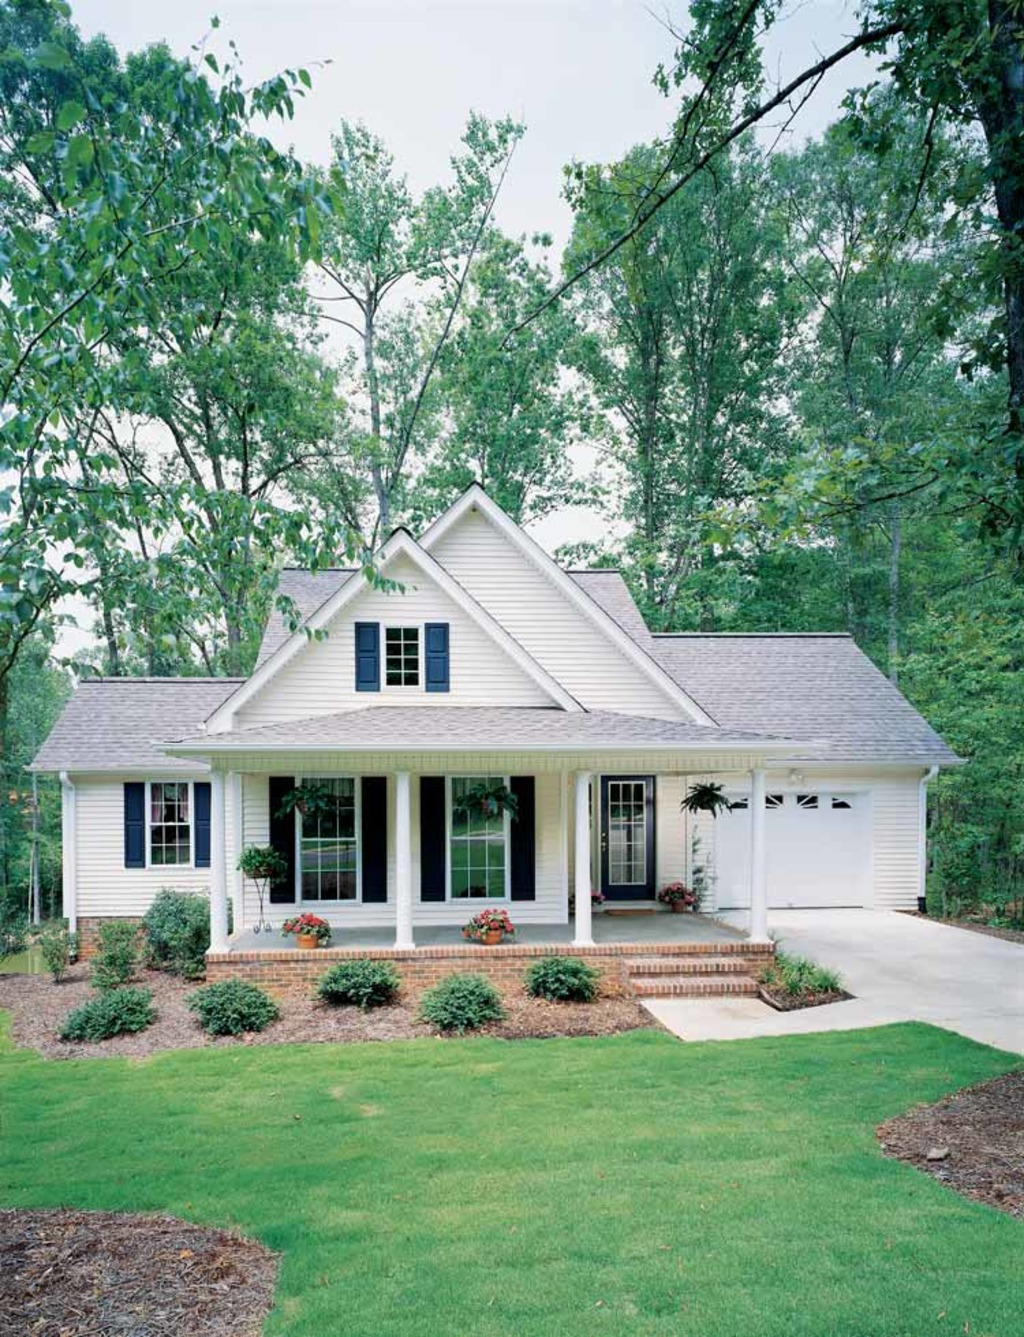 South Louisiana House Plans Fresh Country Style House Plan 3 Beds 2 5 Baths 1558 Sq Ft Plan 929 254